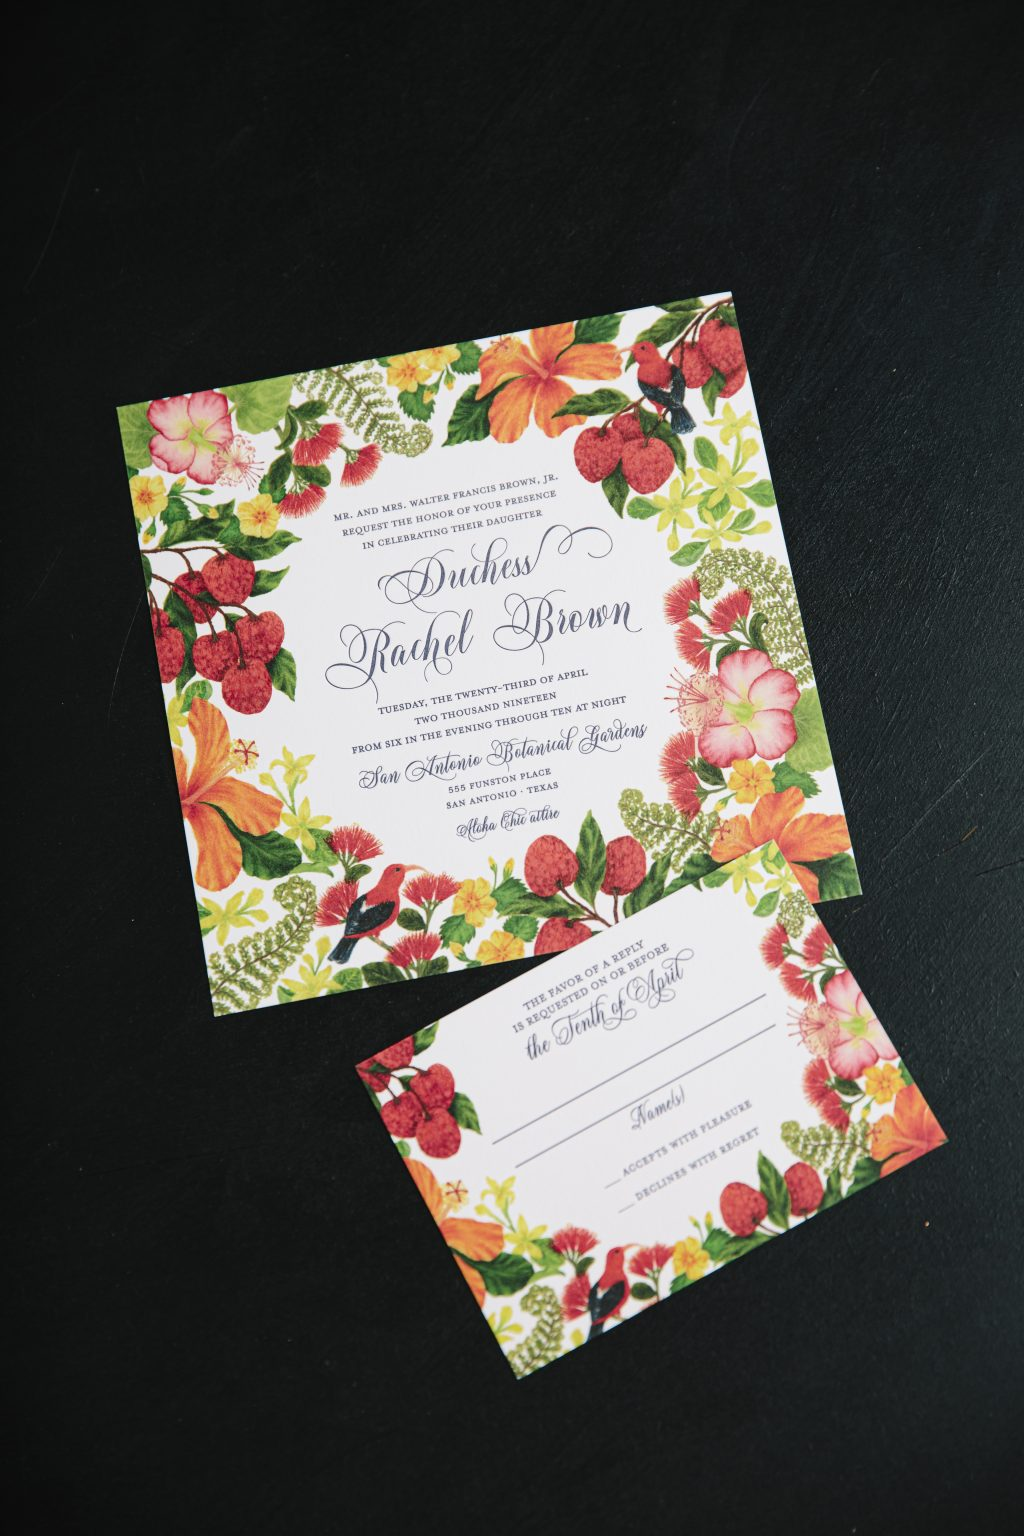 Colorful letterpress invitations with tropical florals